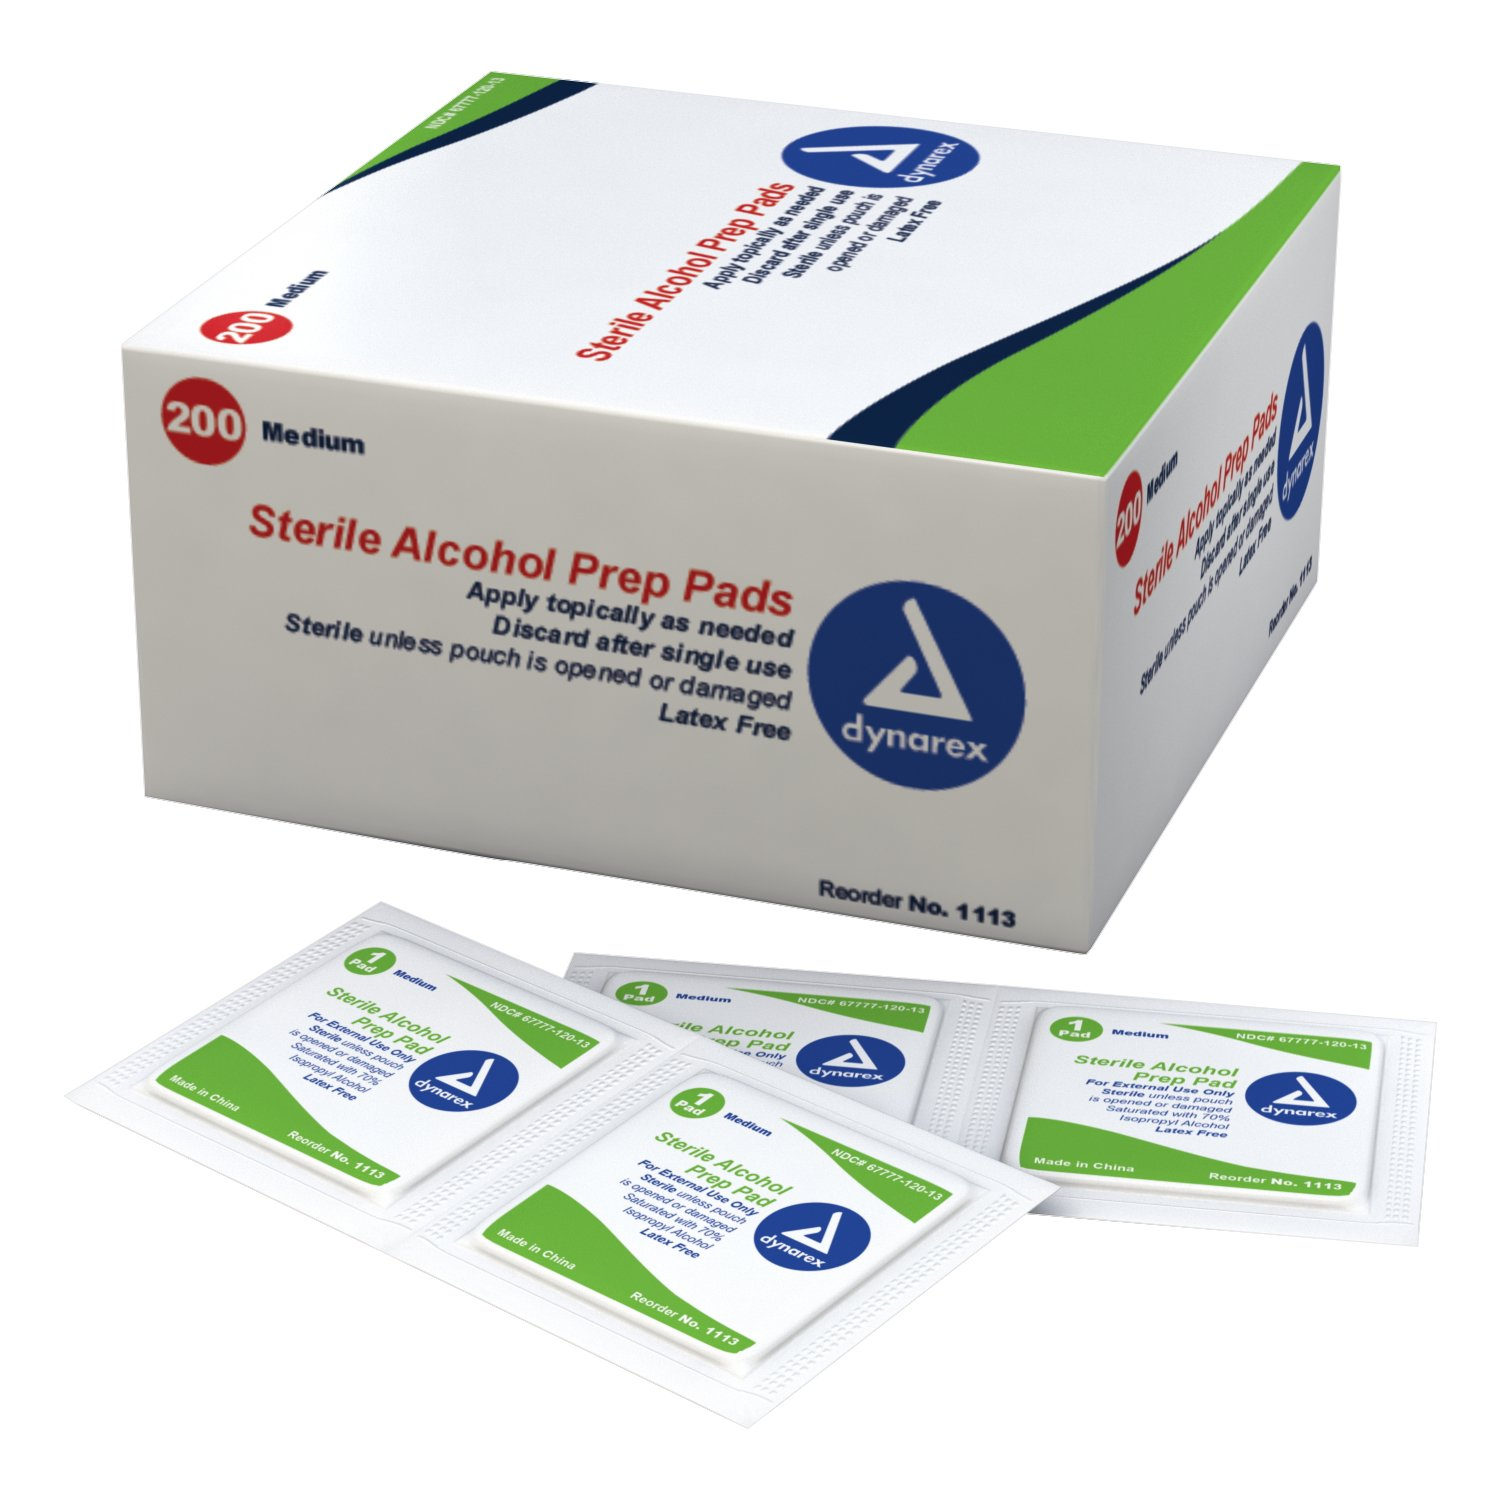 Dynarex 1113c Latex Free Sterile Alcohol Preparation Pad, 4.2 Pound (Pack of 2000)